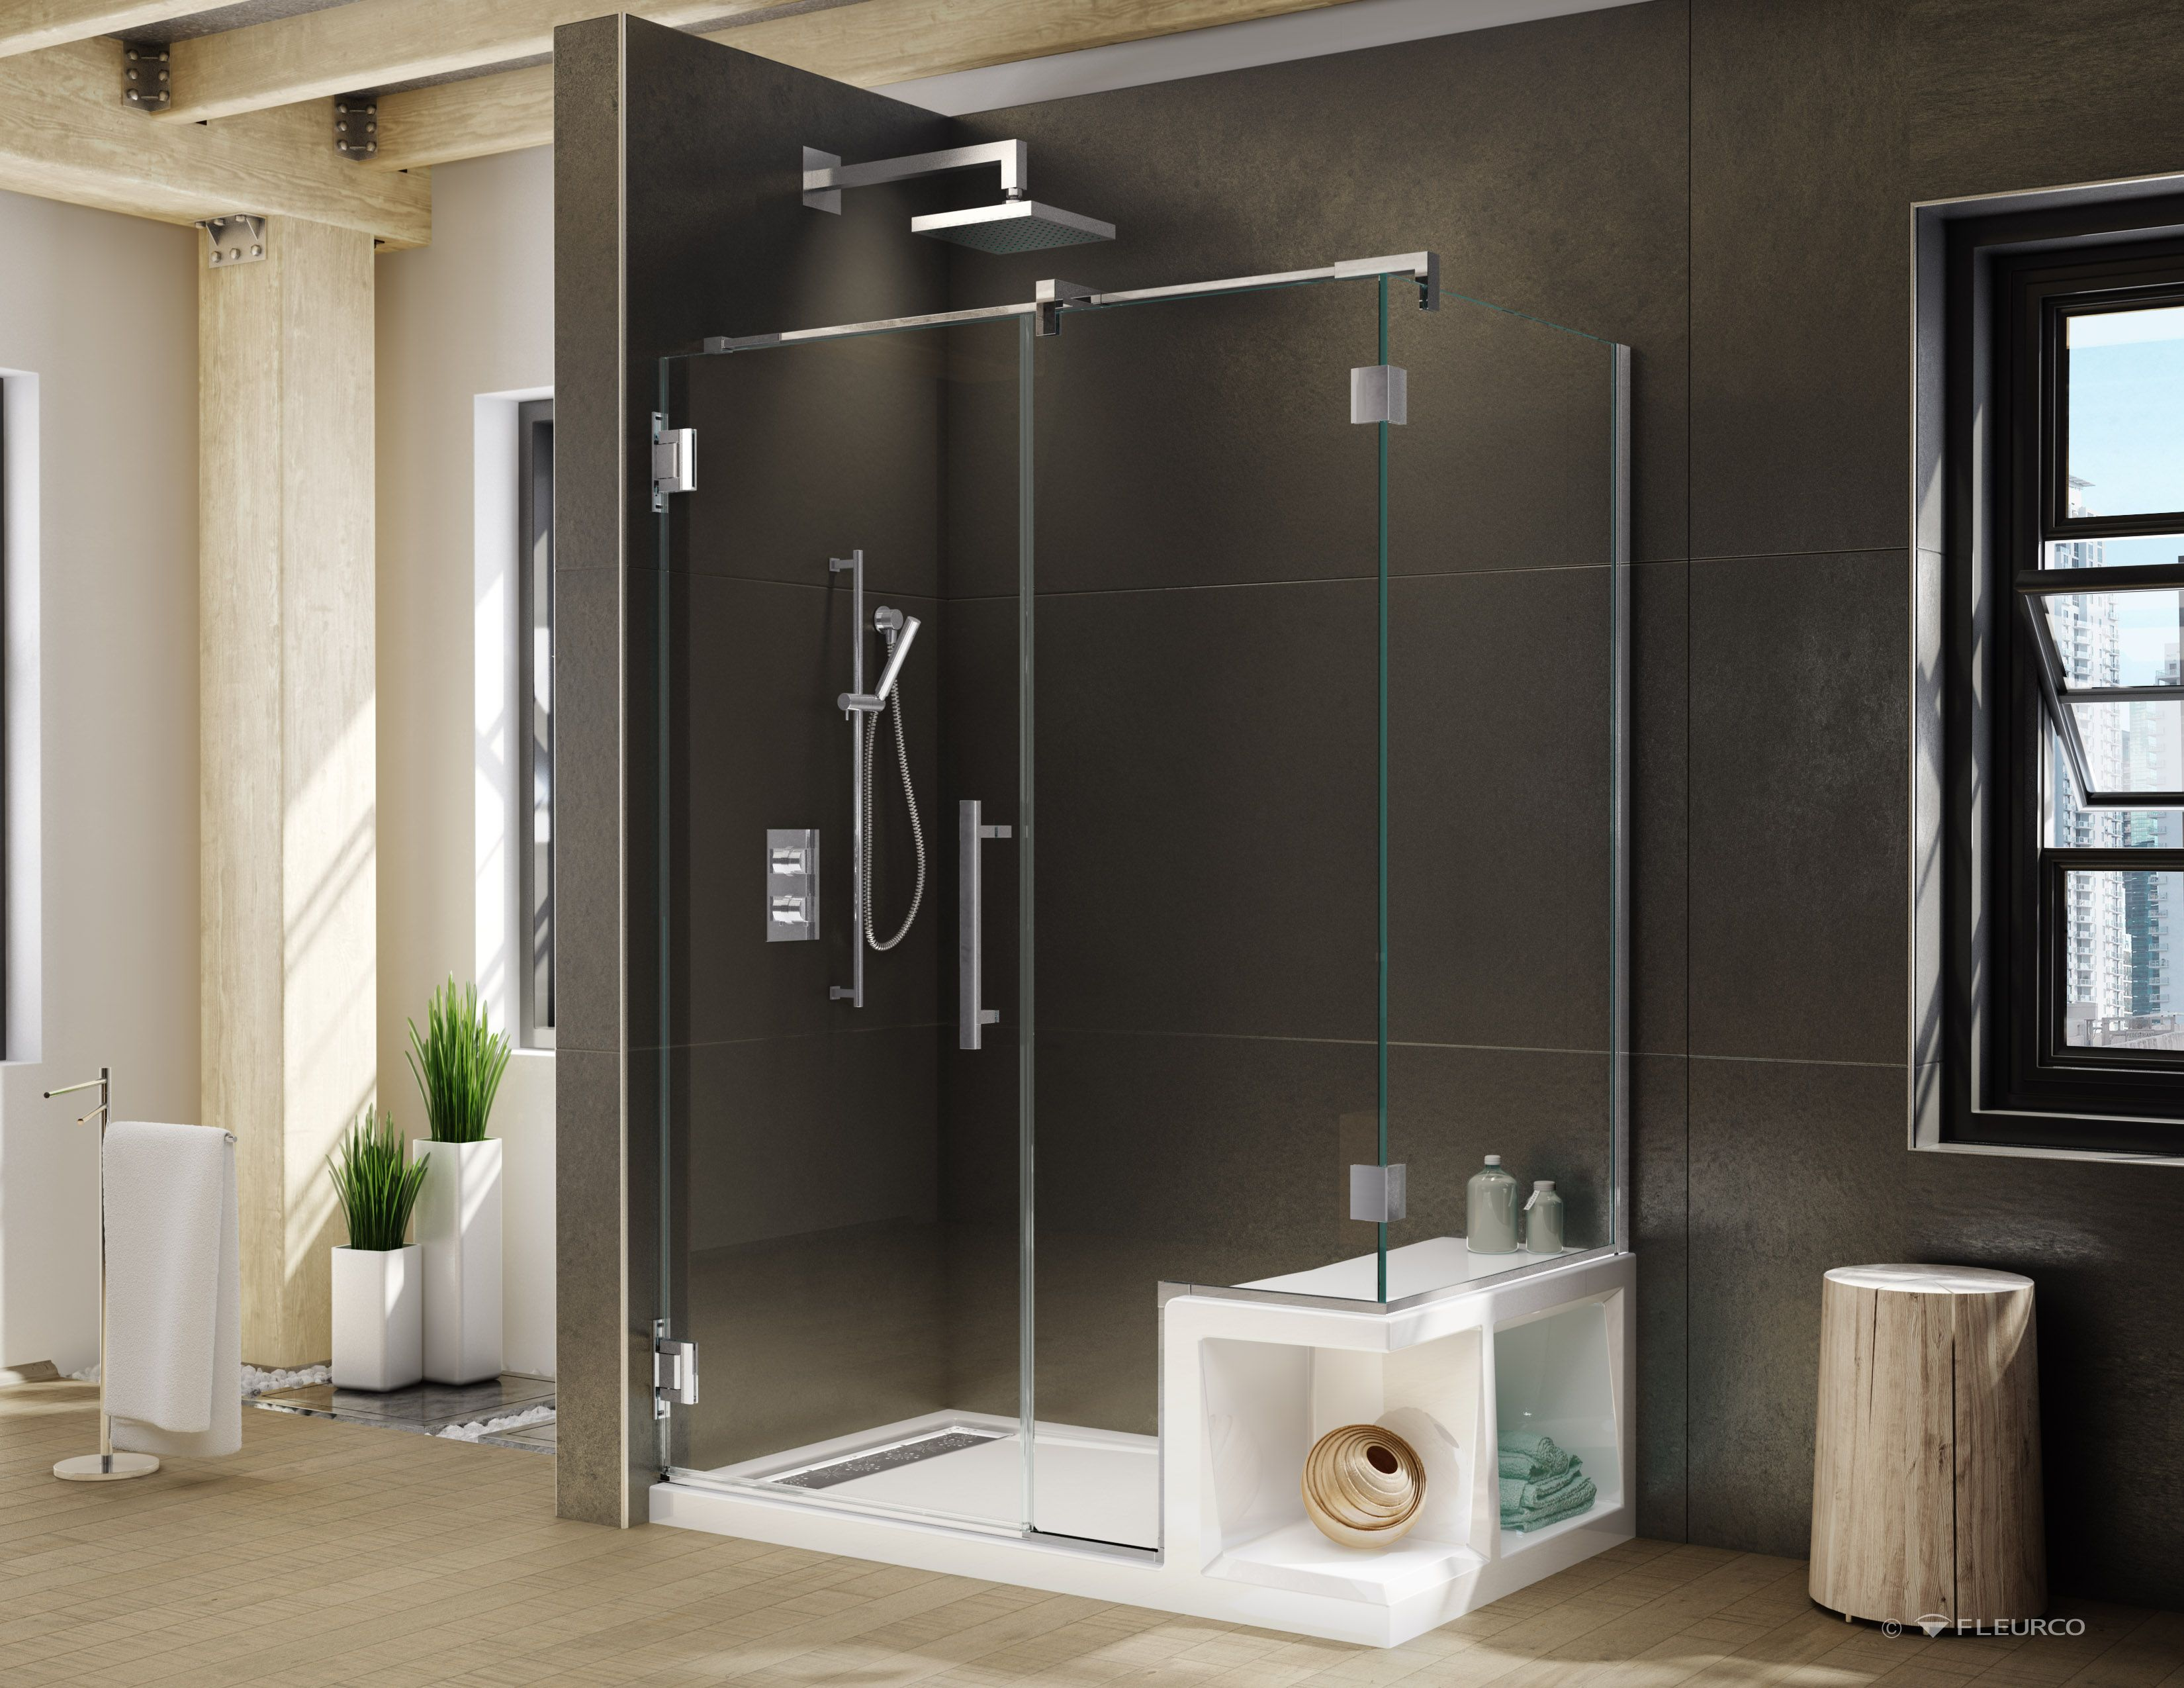 Corteros Shower Base With Seat With Titan Shower Door Both Products By Fleurco Shower Base With Seat Shower Doors Home Remodeling